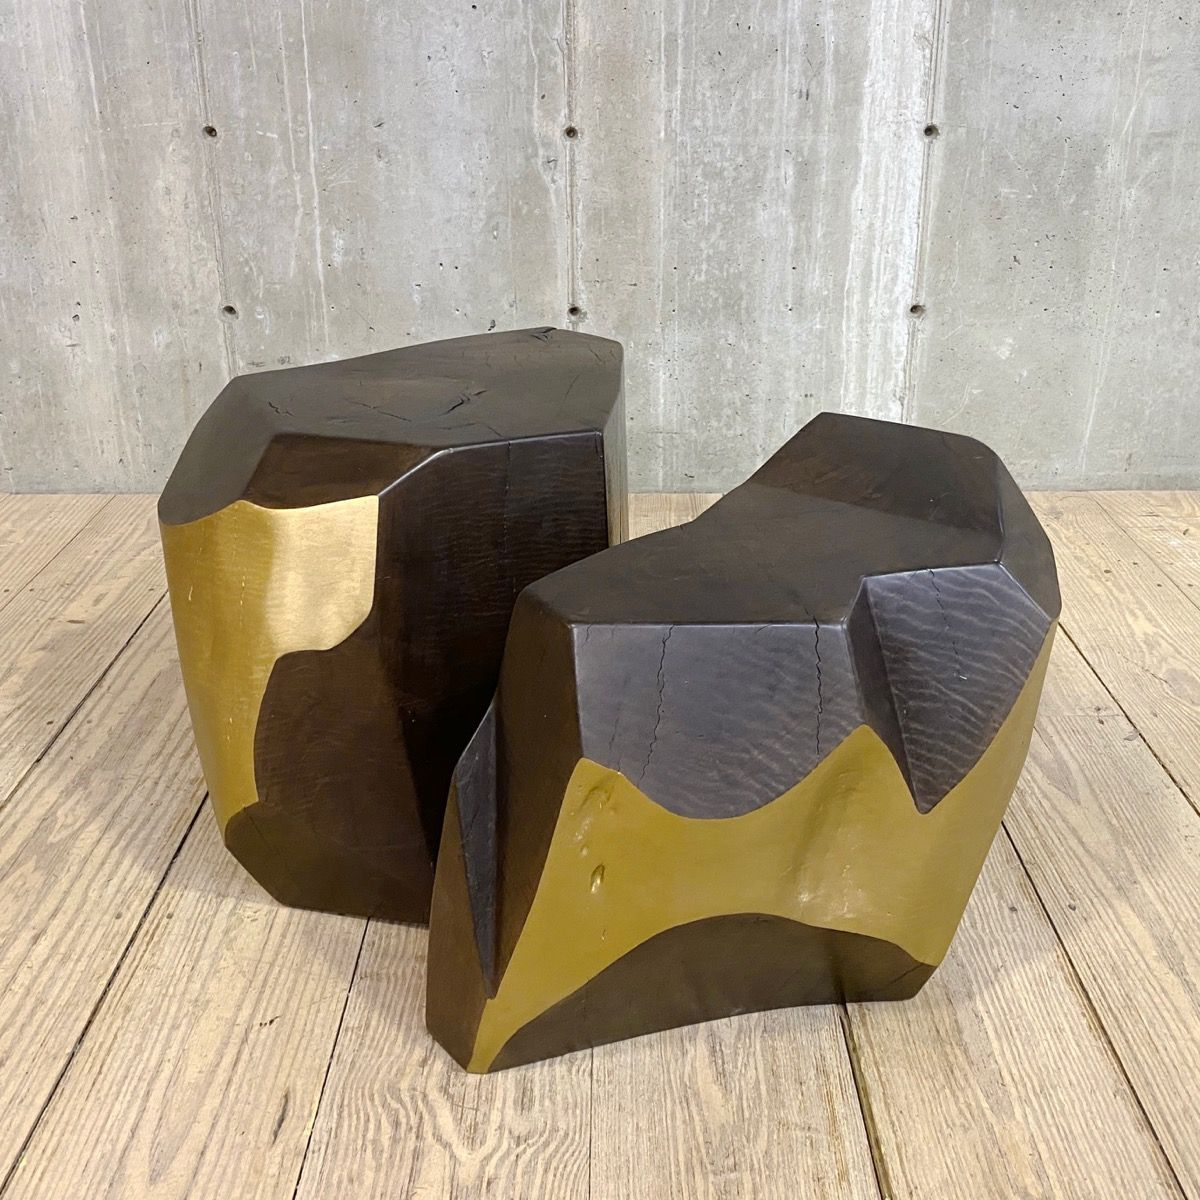 Two Piece Solid Wood Coffee Table With Faceted Gold Highlights Coffee Table Wood Coffee Table Solid Wood Coffee Table [ 1200 x 1200 Pixel ]